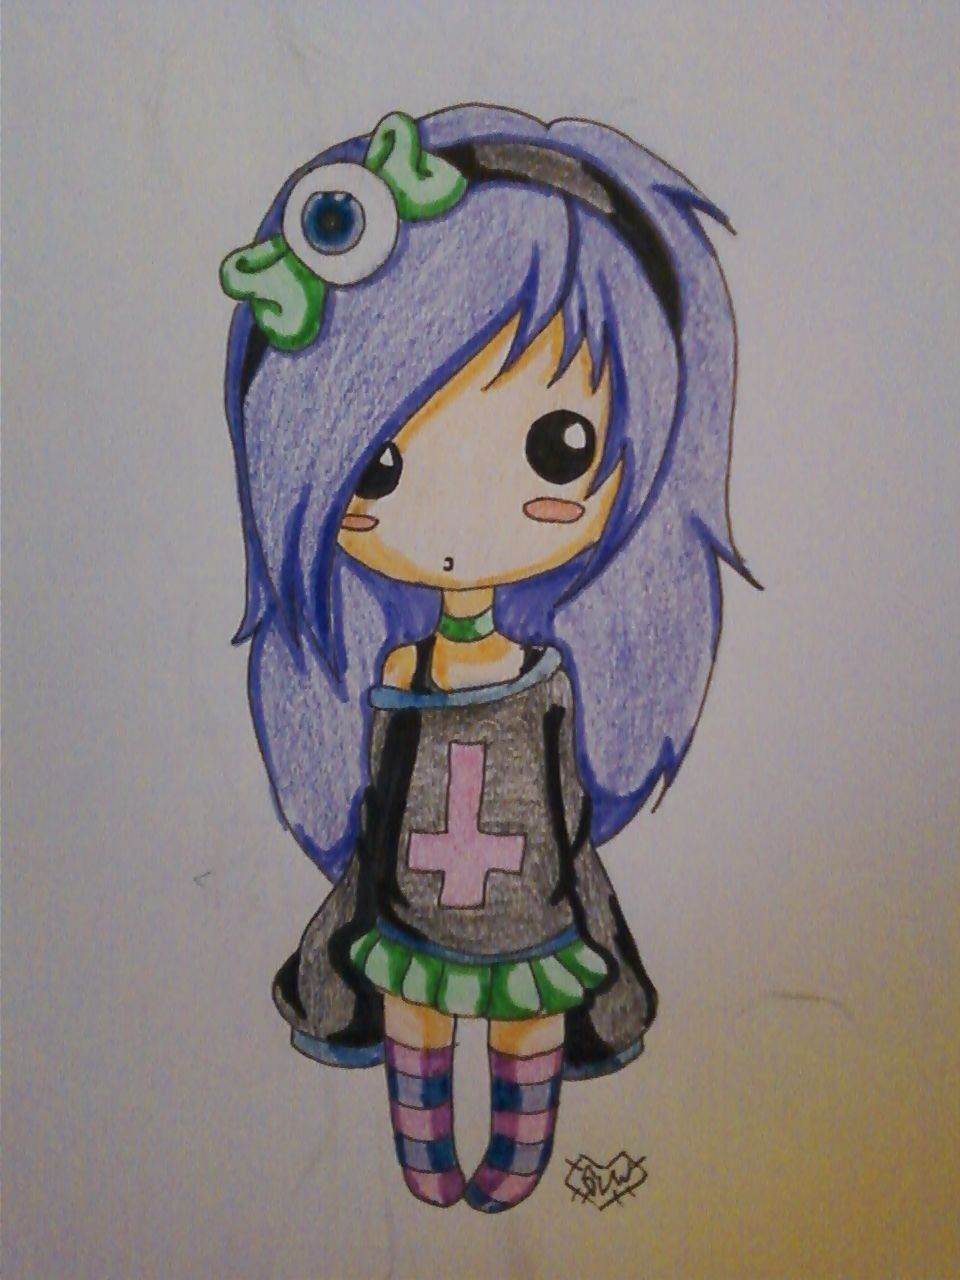 Cute Chibi pastel goth girl =^-^= Wow she is so popular O.o tee hee